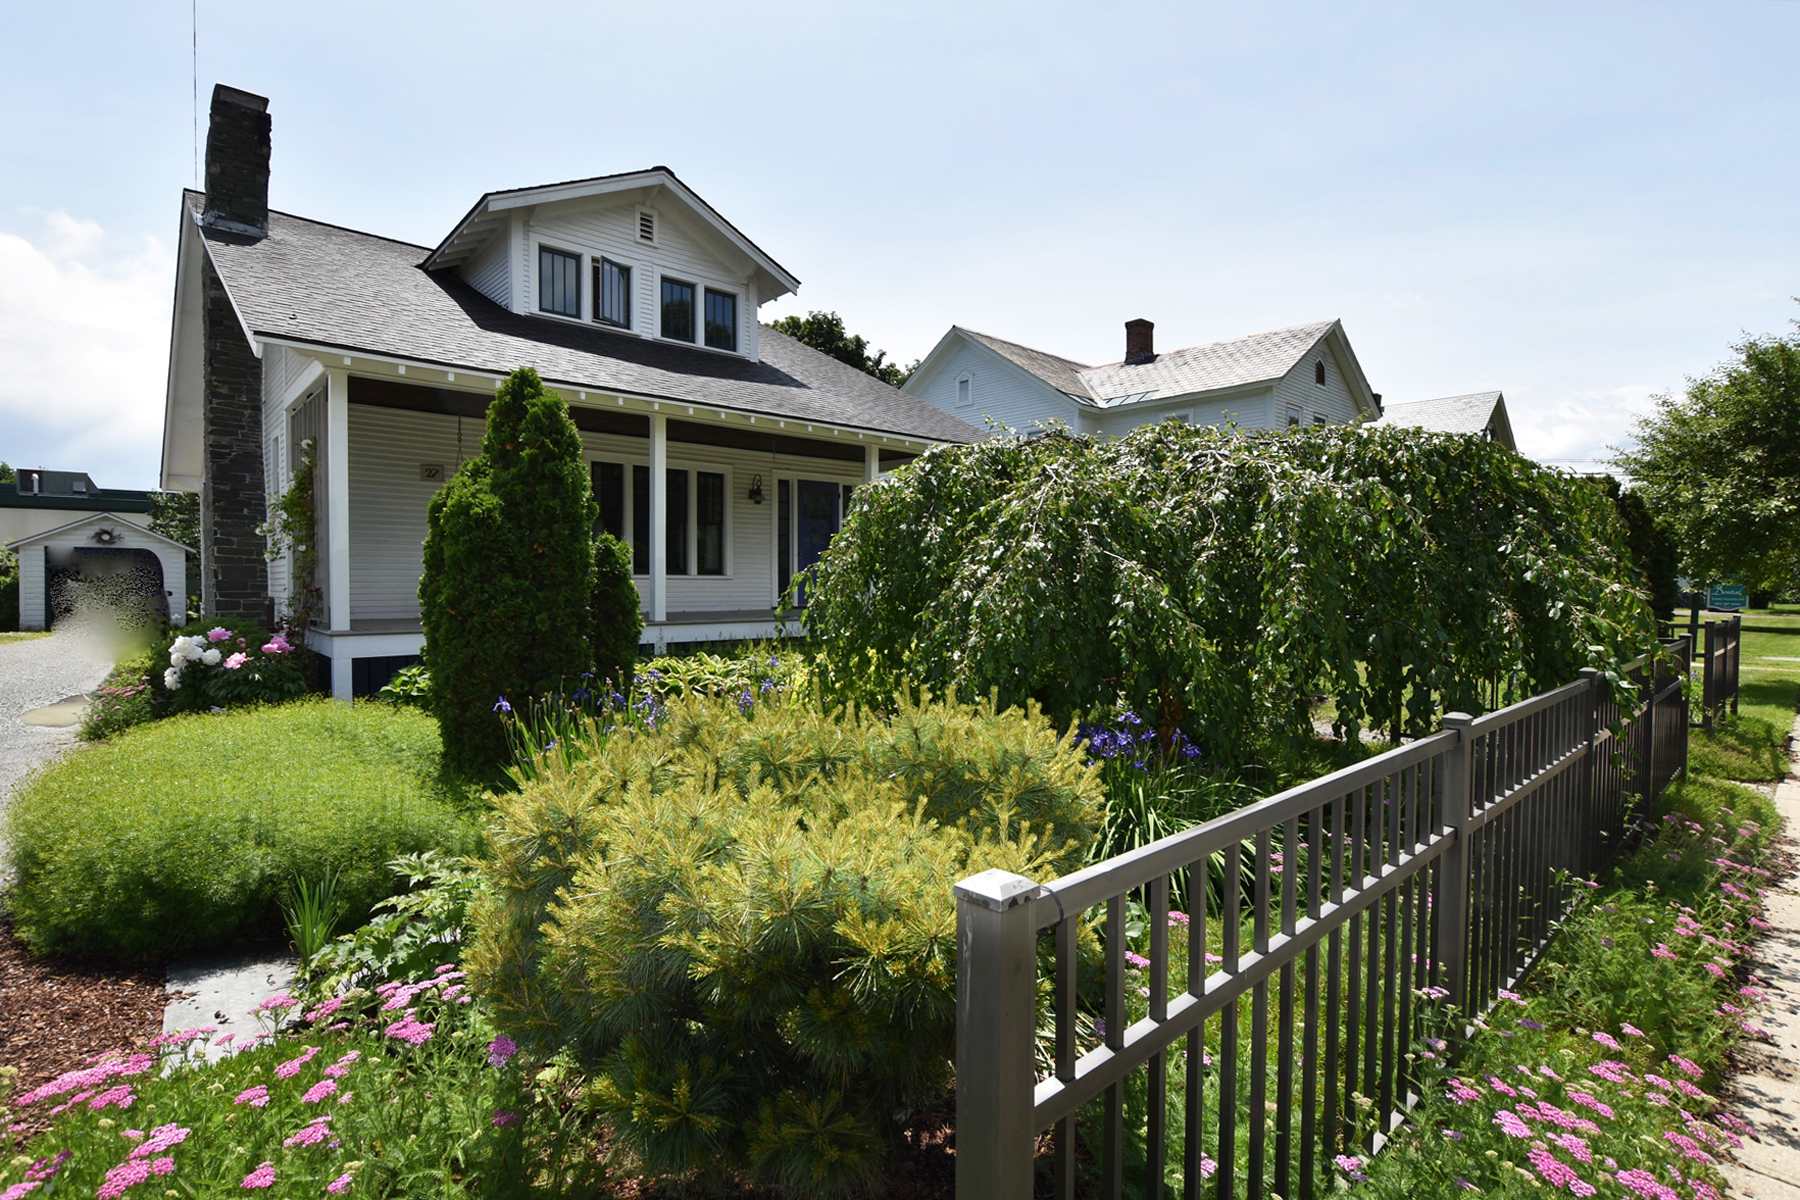 Single Family Homes for Sale at HOME SWEET HOME-VILLAGE BUNGALOW 27 Church St Poultney, Vermont 05764 United States